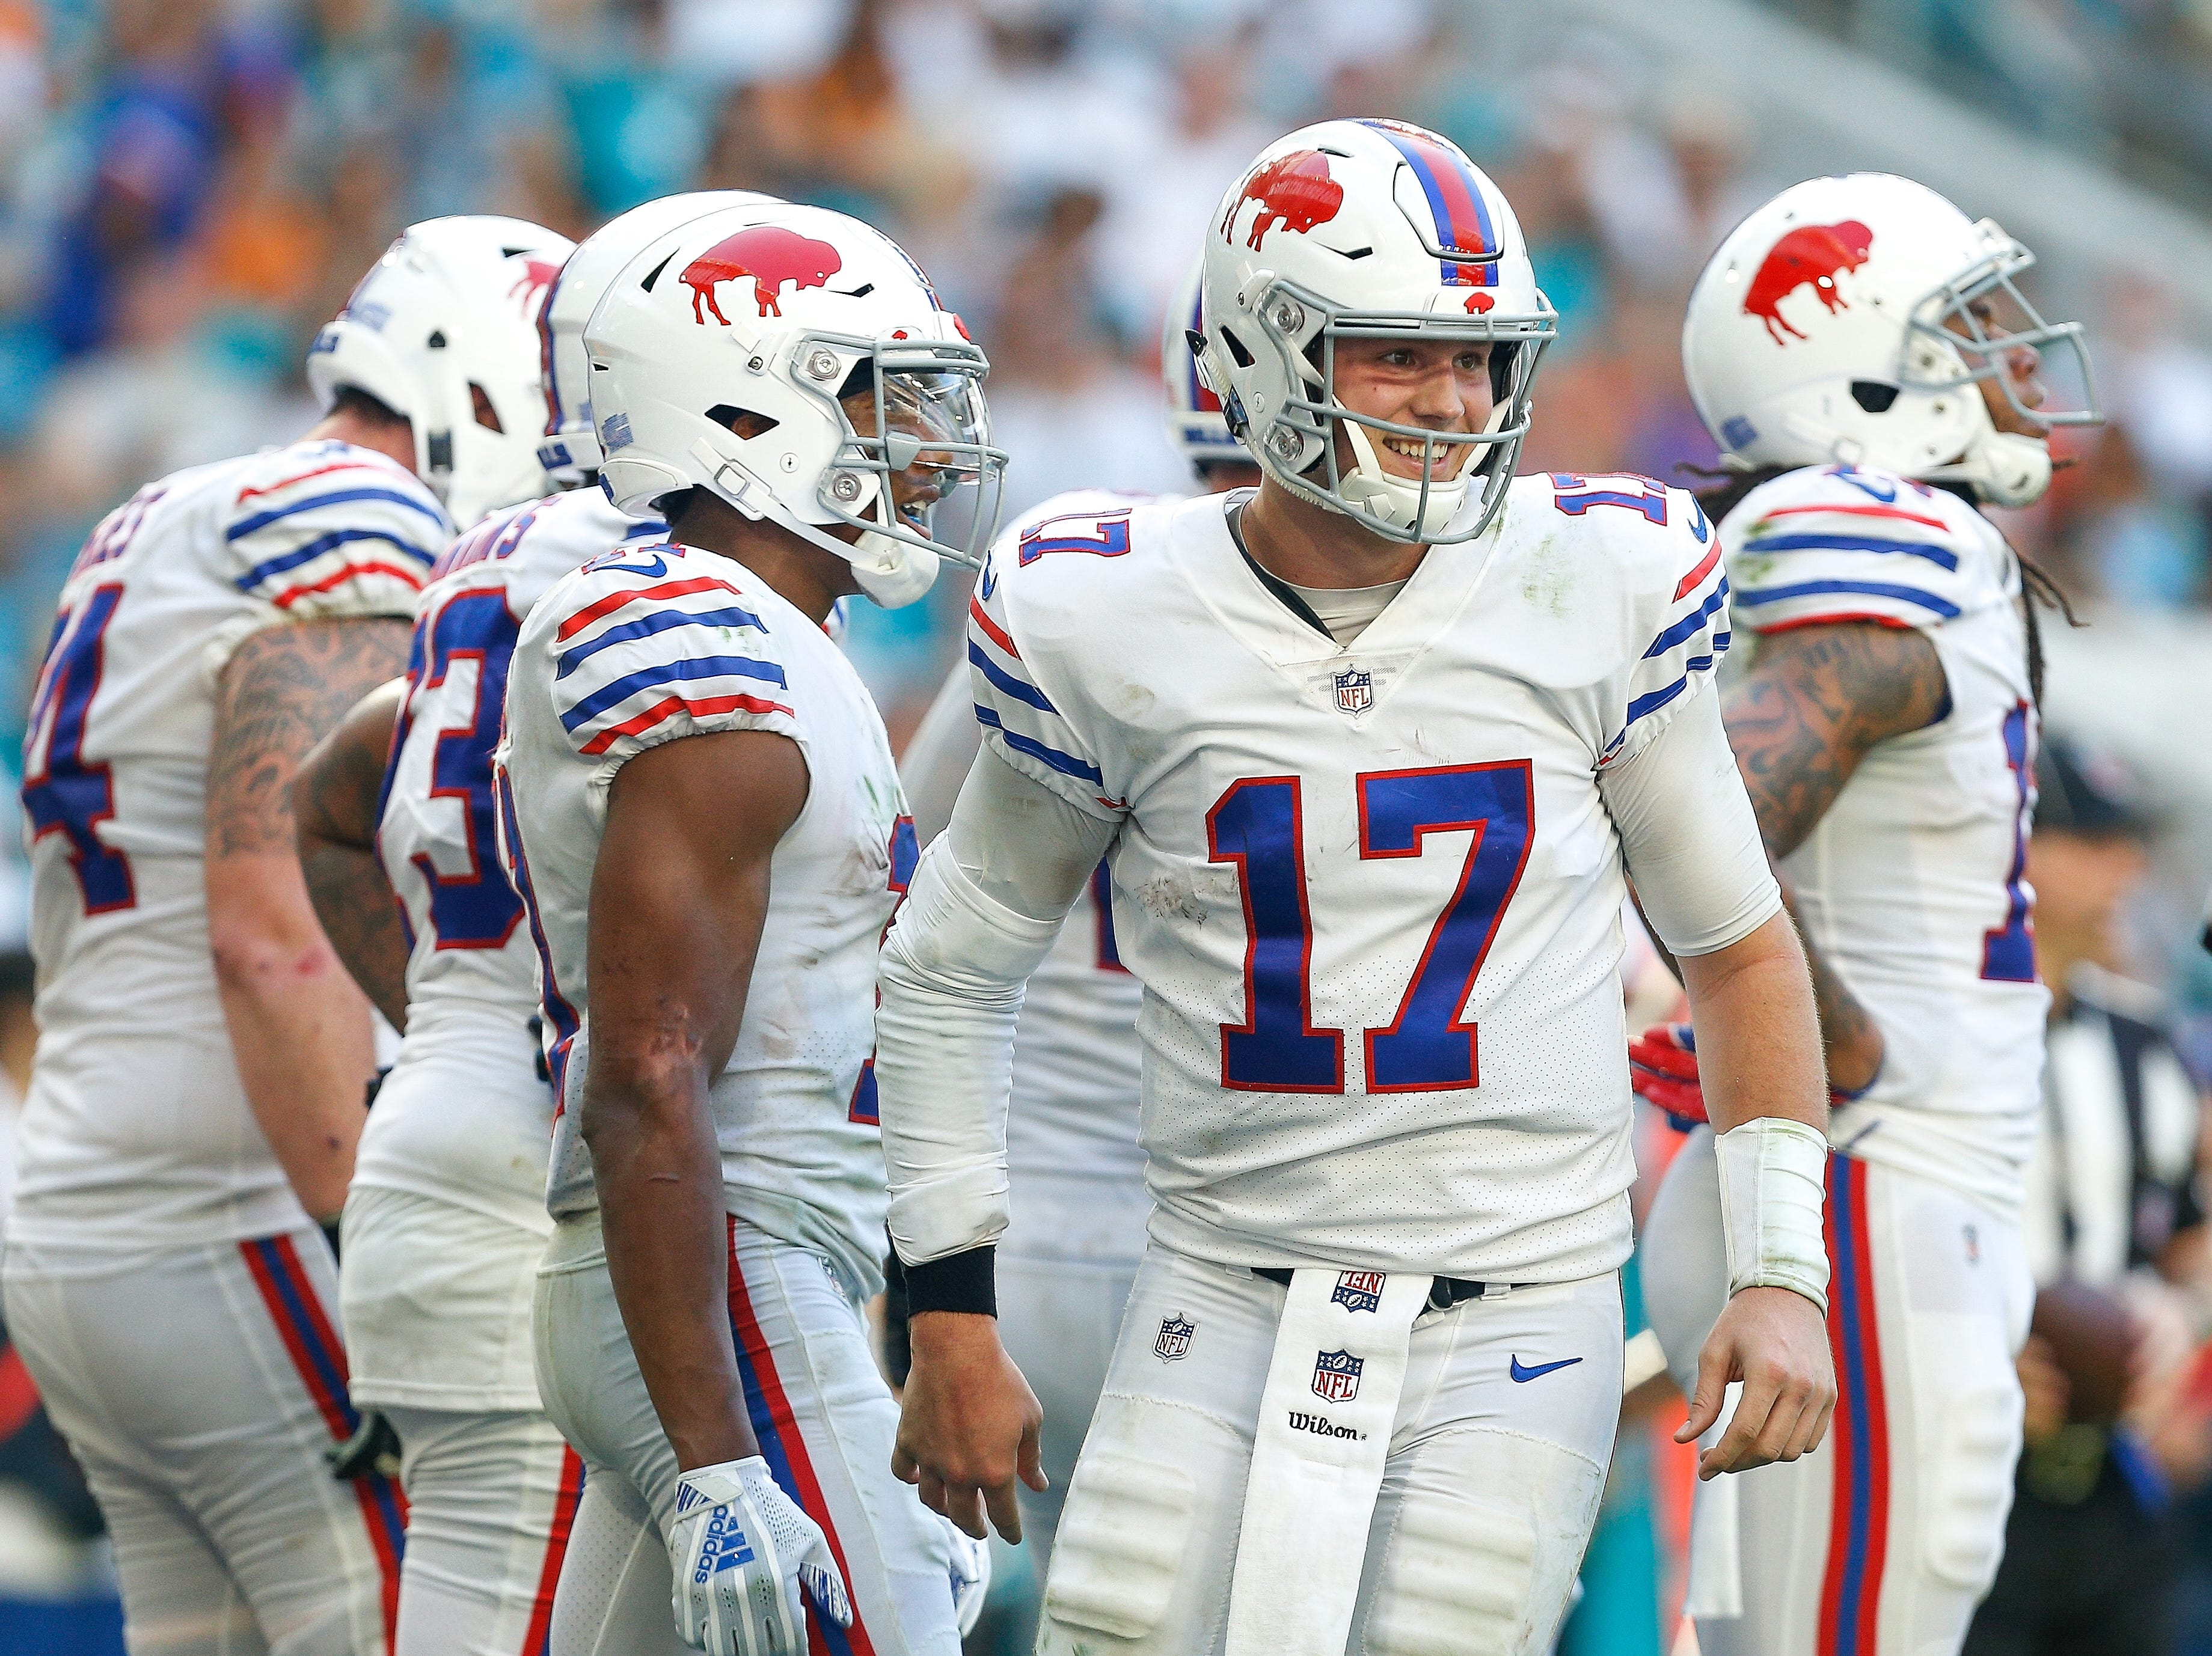 MIAMI, FL - DECEMBER 02:  Josh Allen #17 of the Buffalo Bills celebrates with Zay Jones #11 after a touchdown against the Miami Dolphins during the second half at Hard Rock Stadium on December 2, 2018 in Miami, Florida.  (Photo by Michael Reaves/Getty Images)